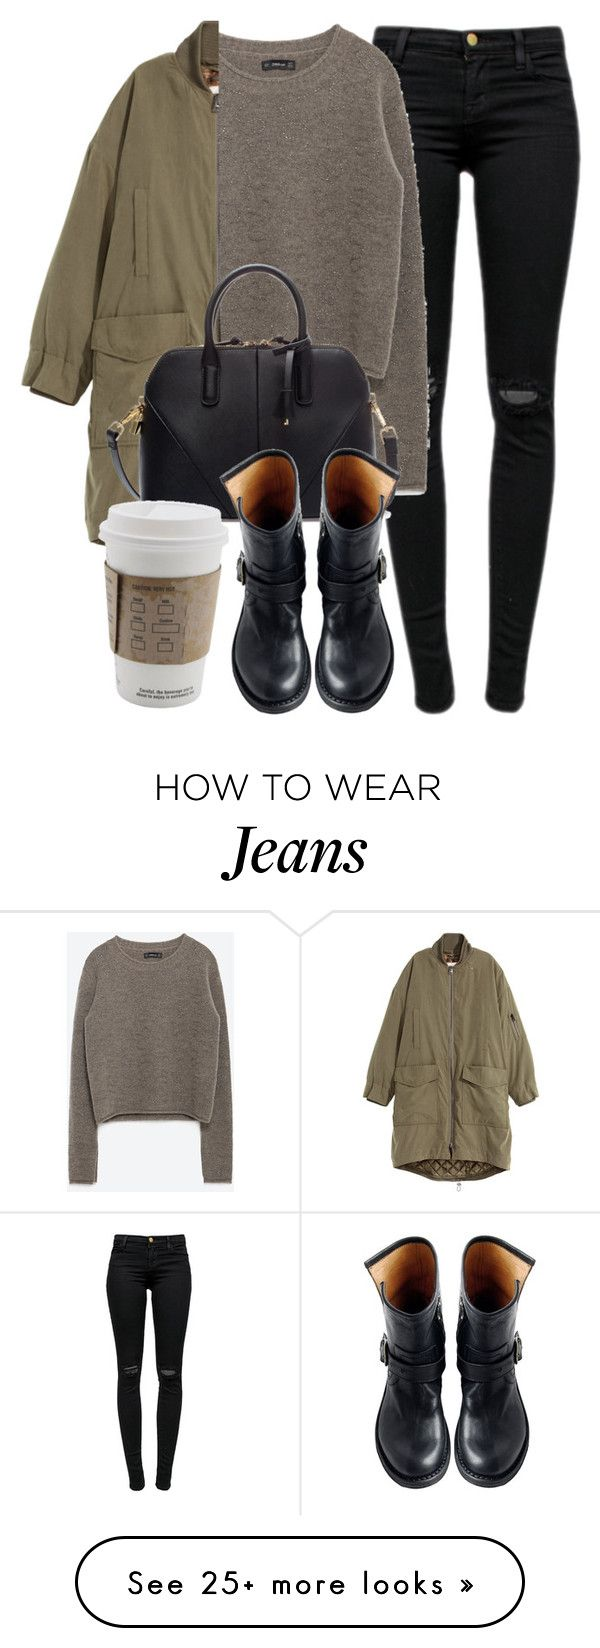 """Untitled #5030"" by laurenmboot on Polyvore featuring J Brand, Zara, H&M and Fiorentini + Baker"